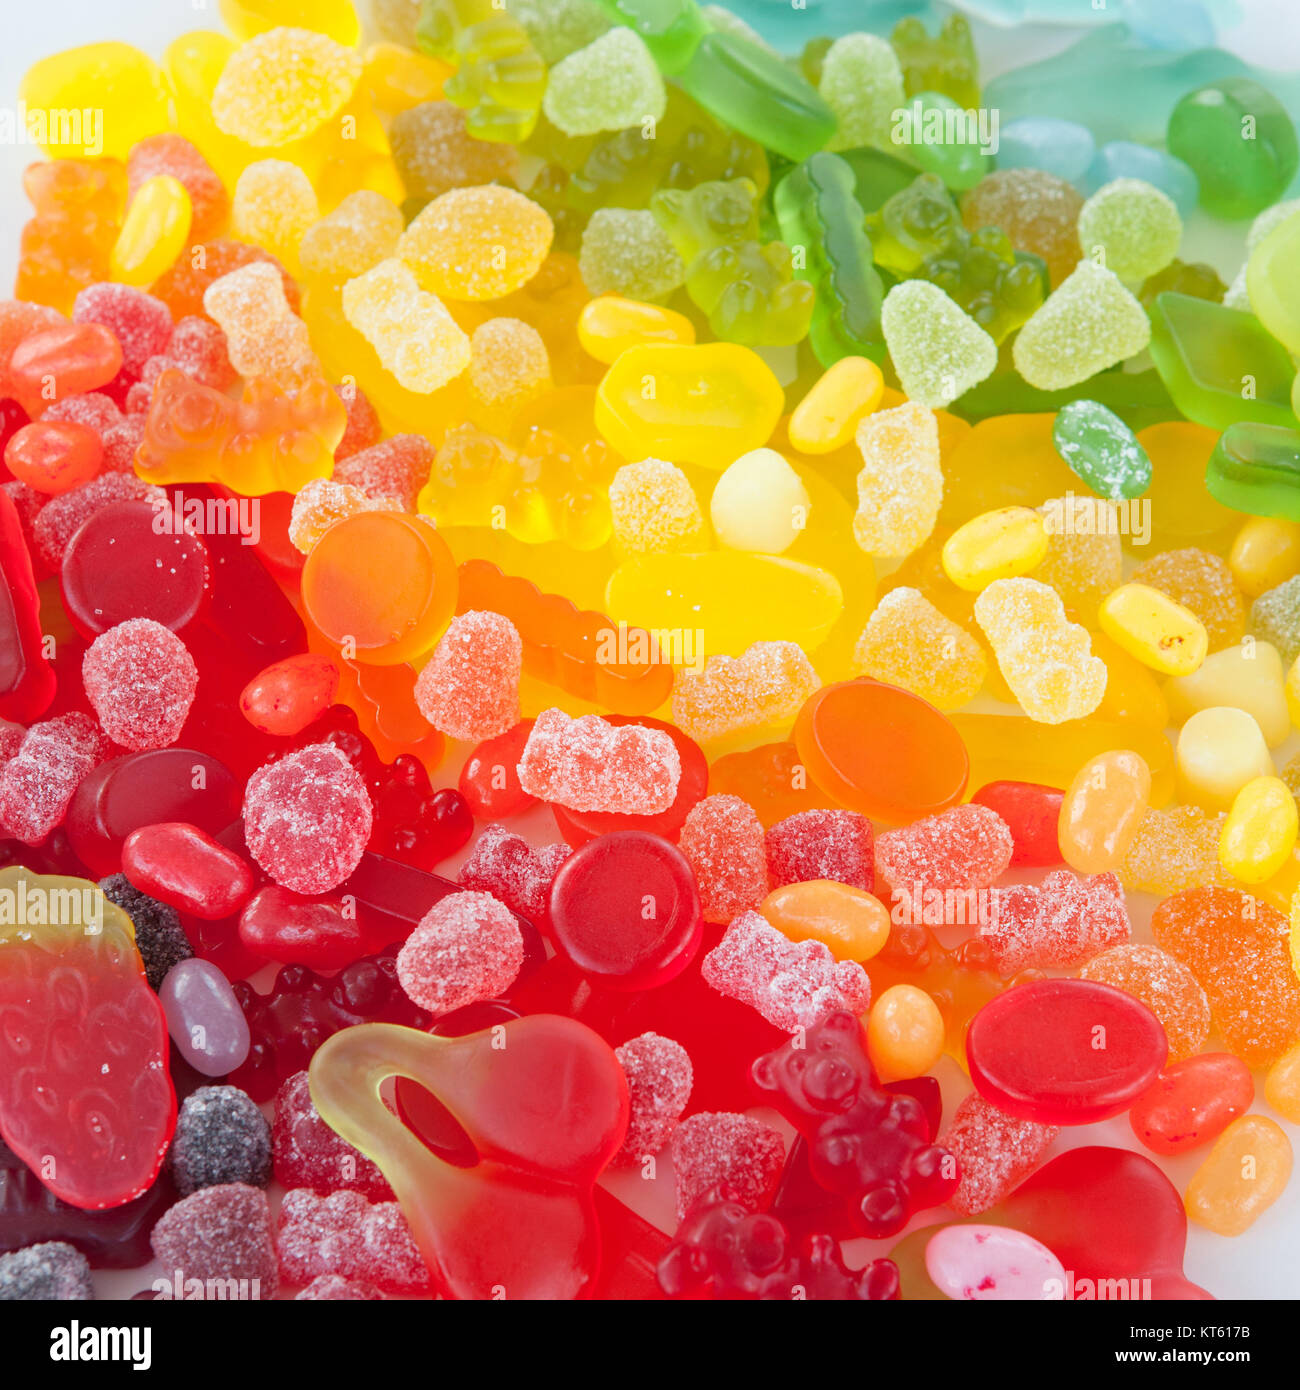 colorful fruit jelly - Stock Image